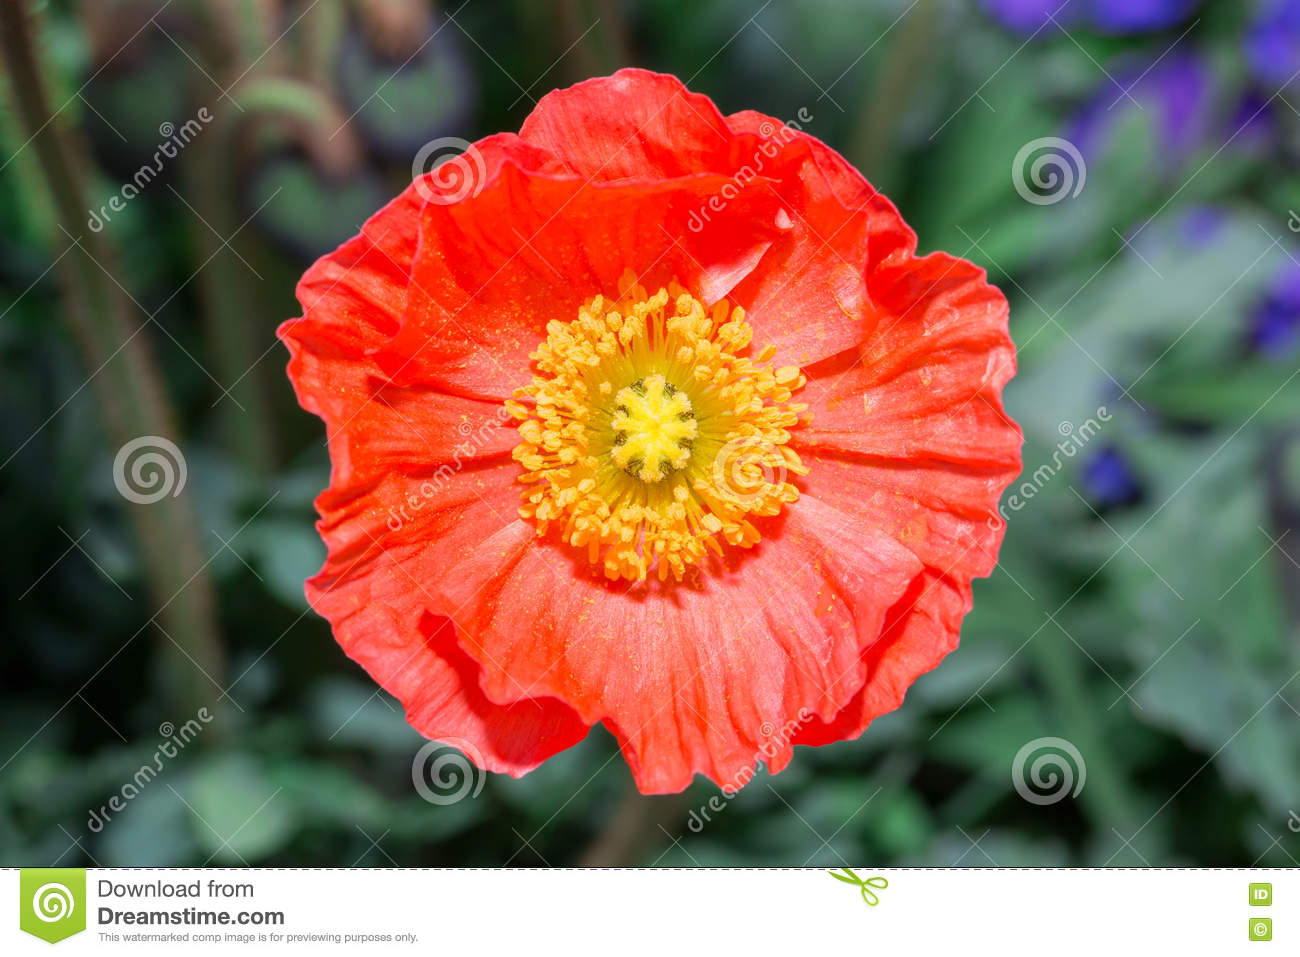 Close Up Of A Red Iceland Poppyscientific Name Papaver Nudicaul